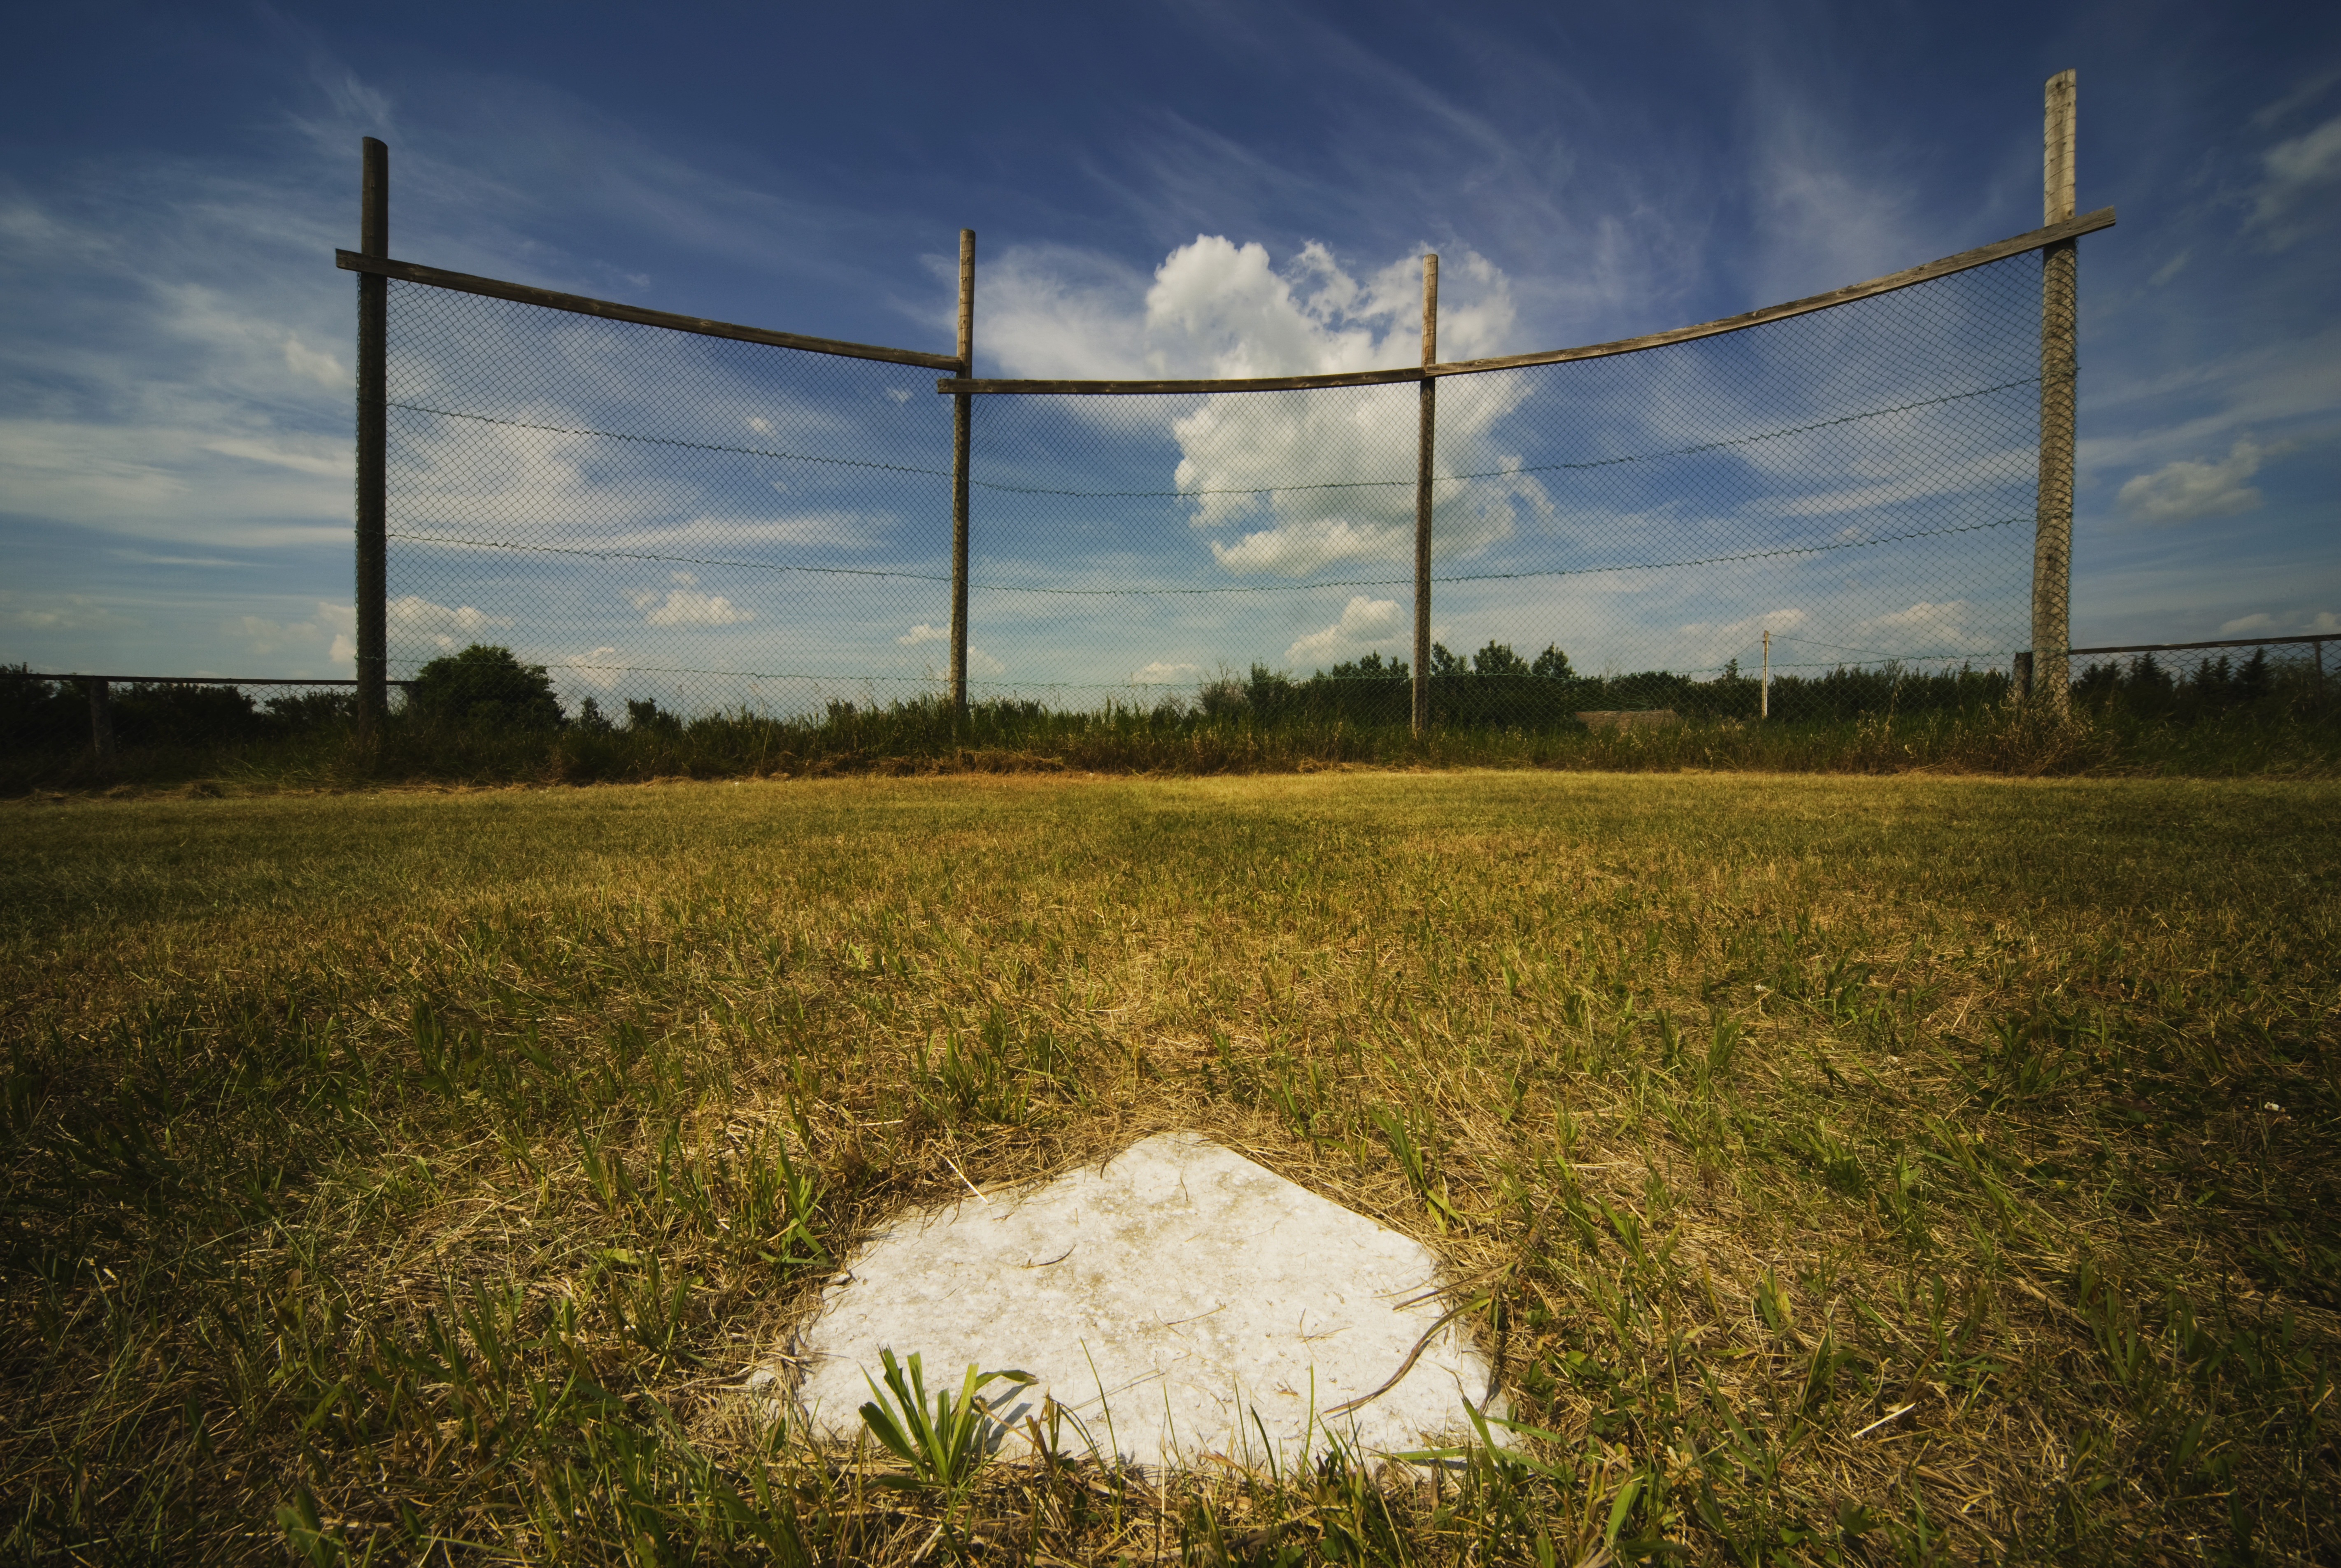 An Old Baseball Diamond